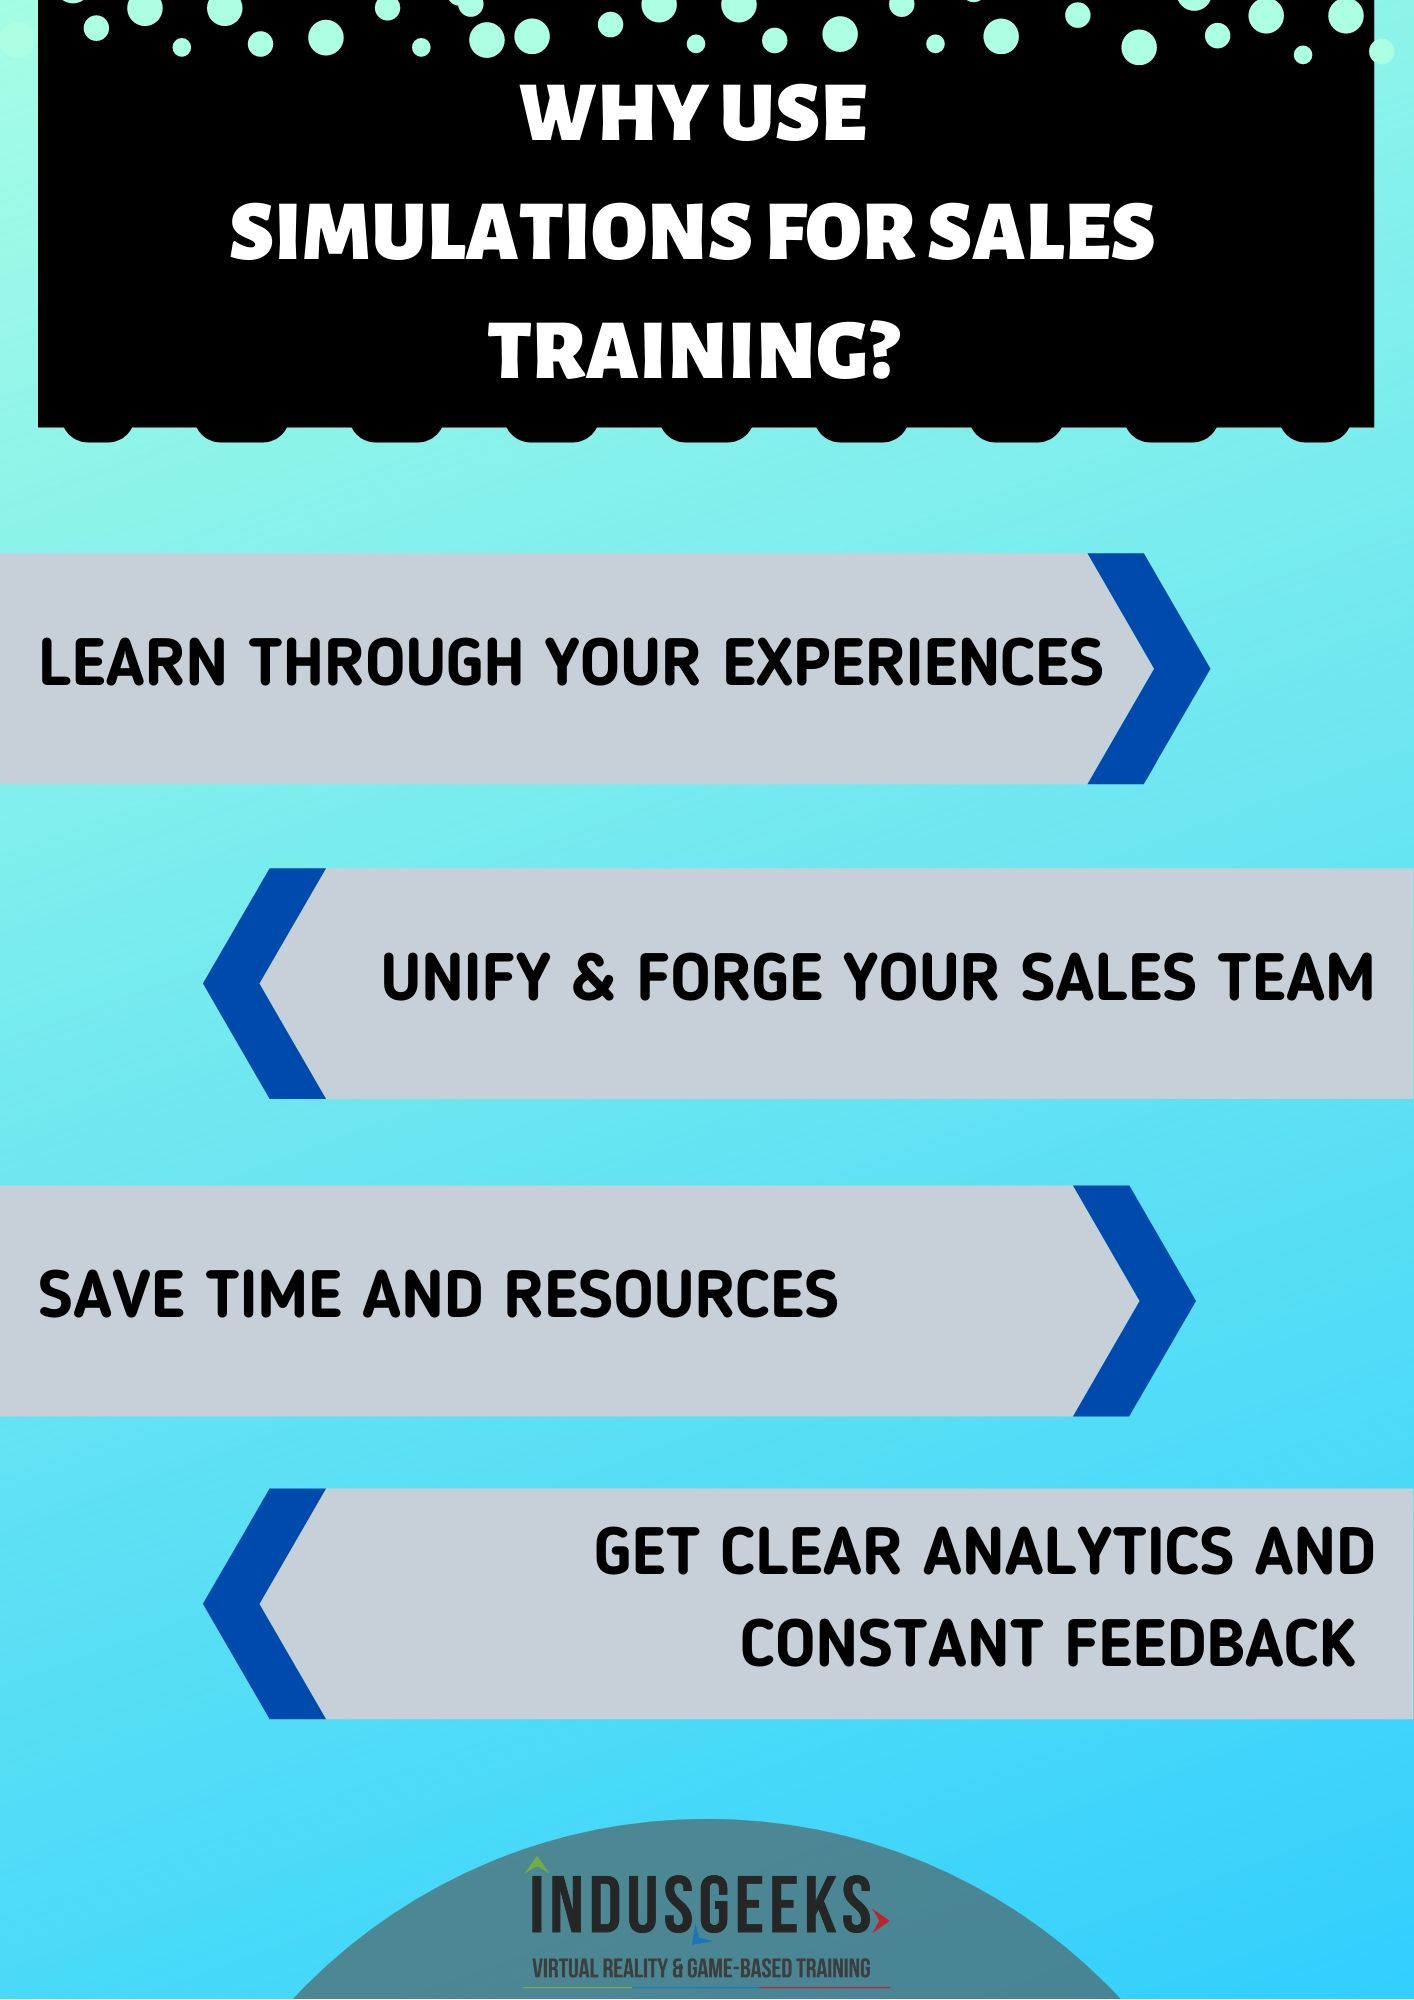 Why use simulation for sales training